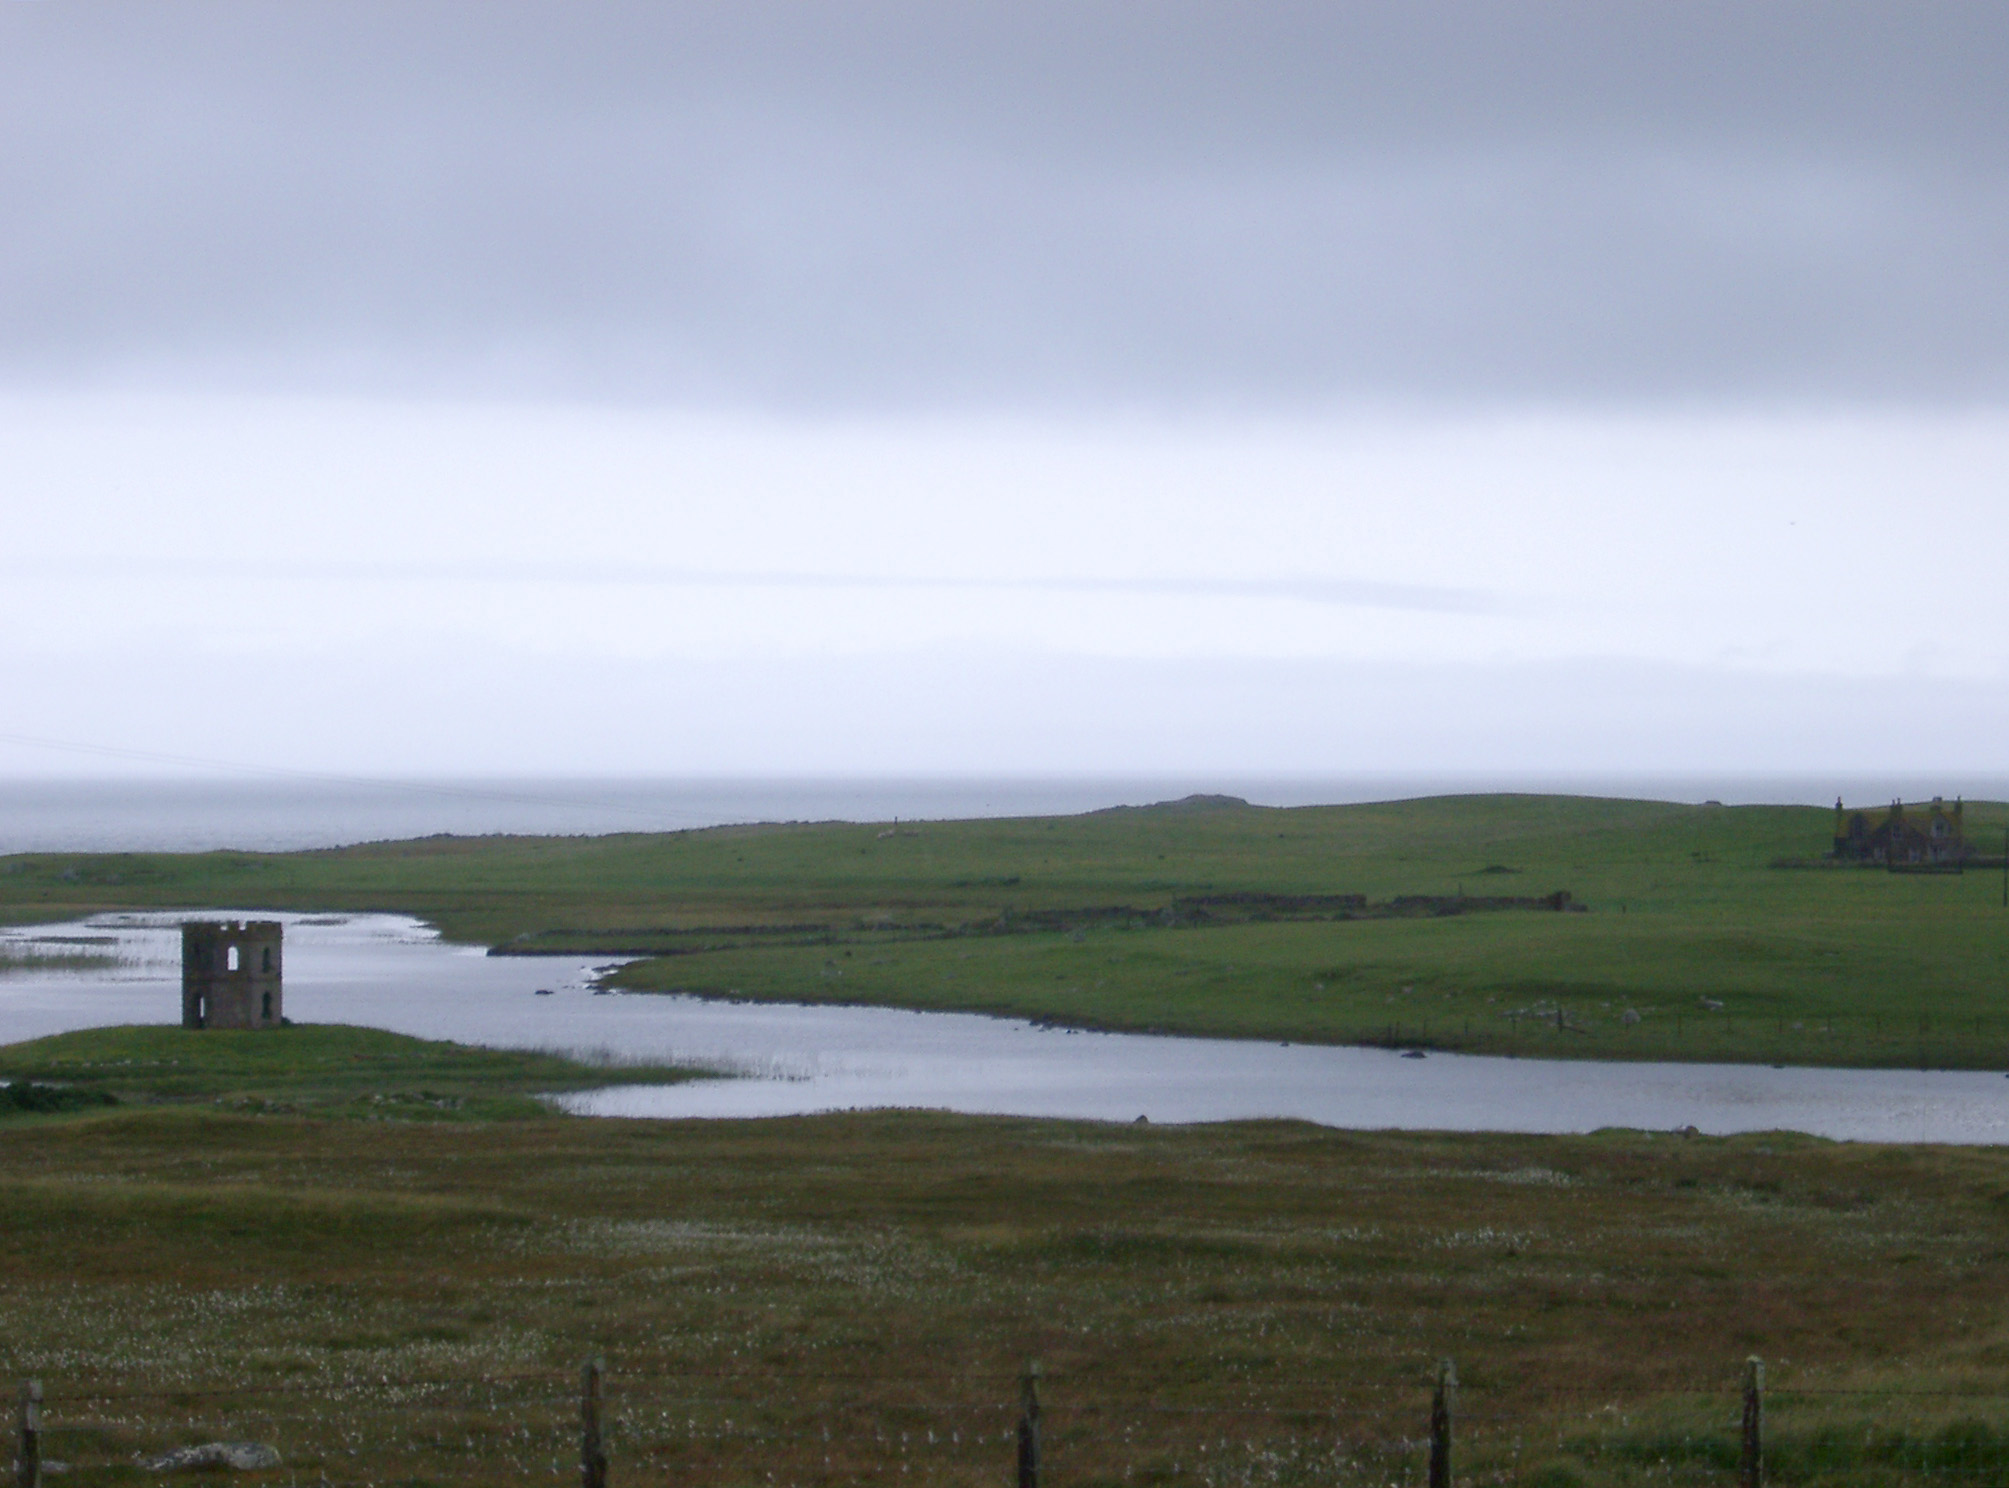 Landscape view of the historic Scolpaig Tower, a Georgian folly near the village of Scolpaig, Isle of North Uist, Outer Hebrides built around 1830 to provide employment during a time of famine